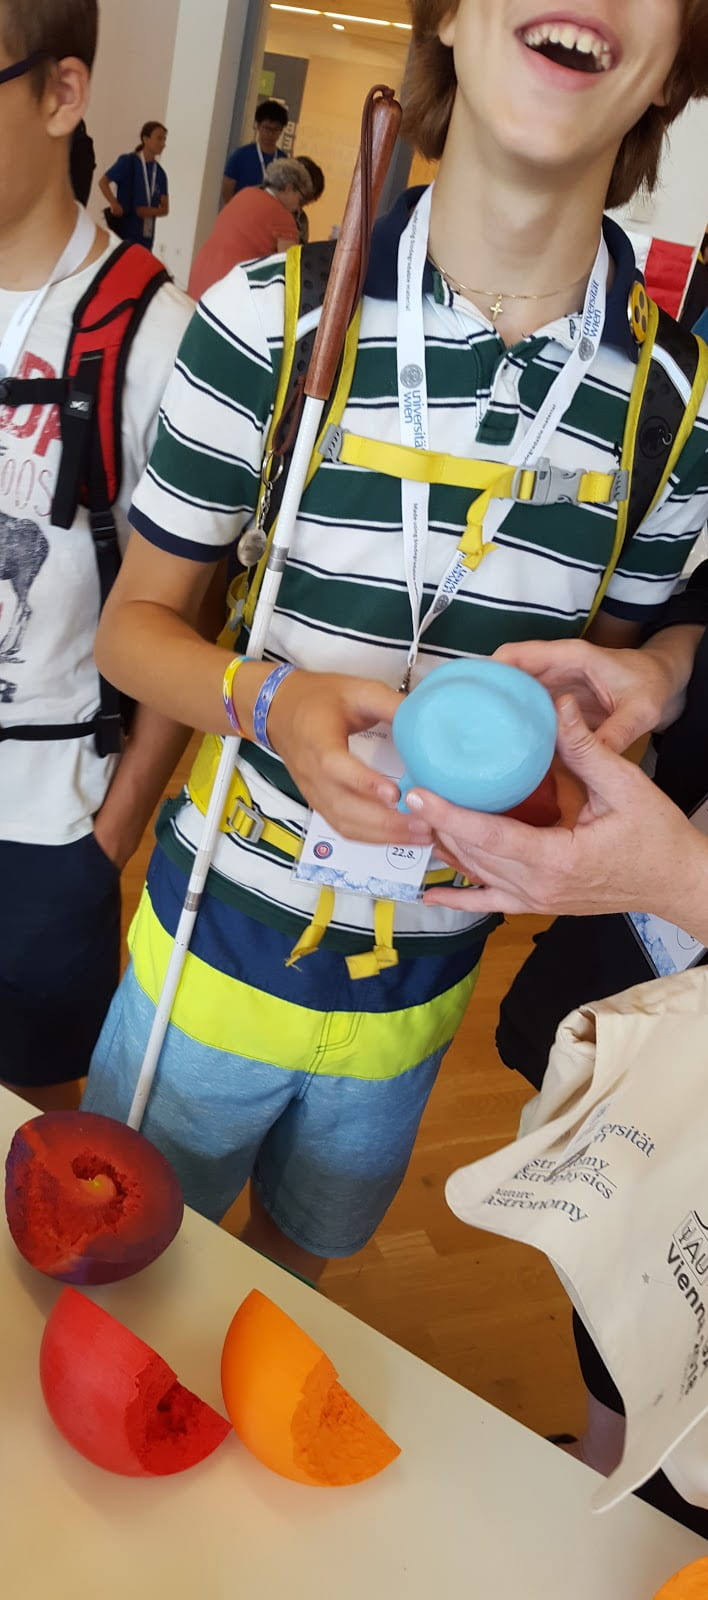 A student with visual impairment holds a 3D printed model of the Eta Carinae Homunculus nebula.